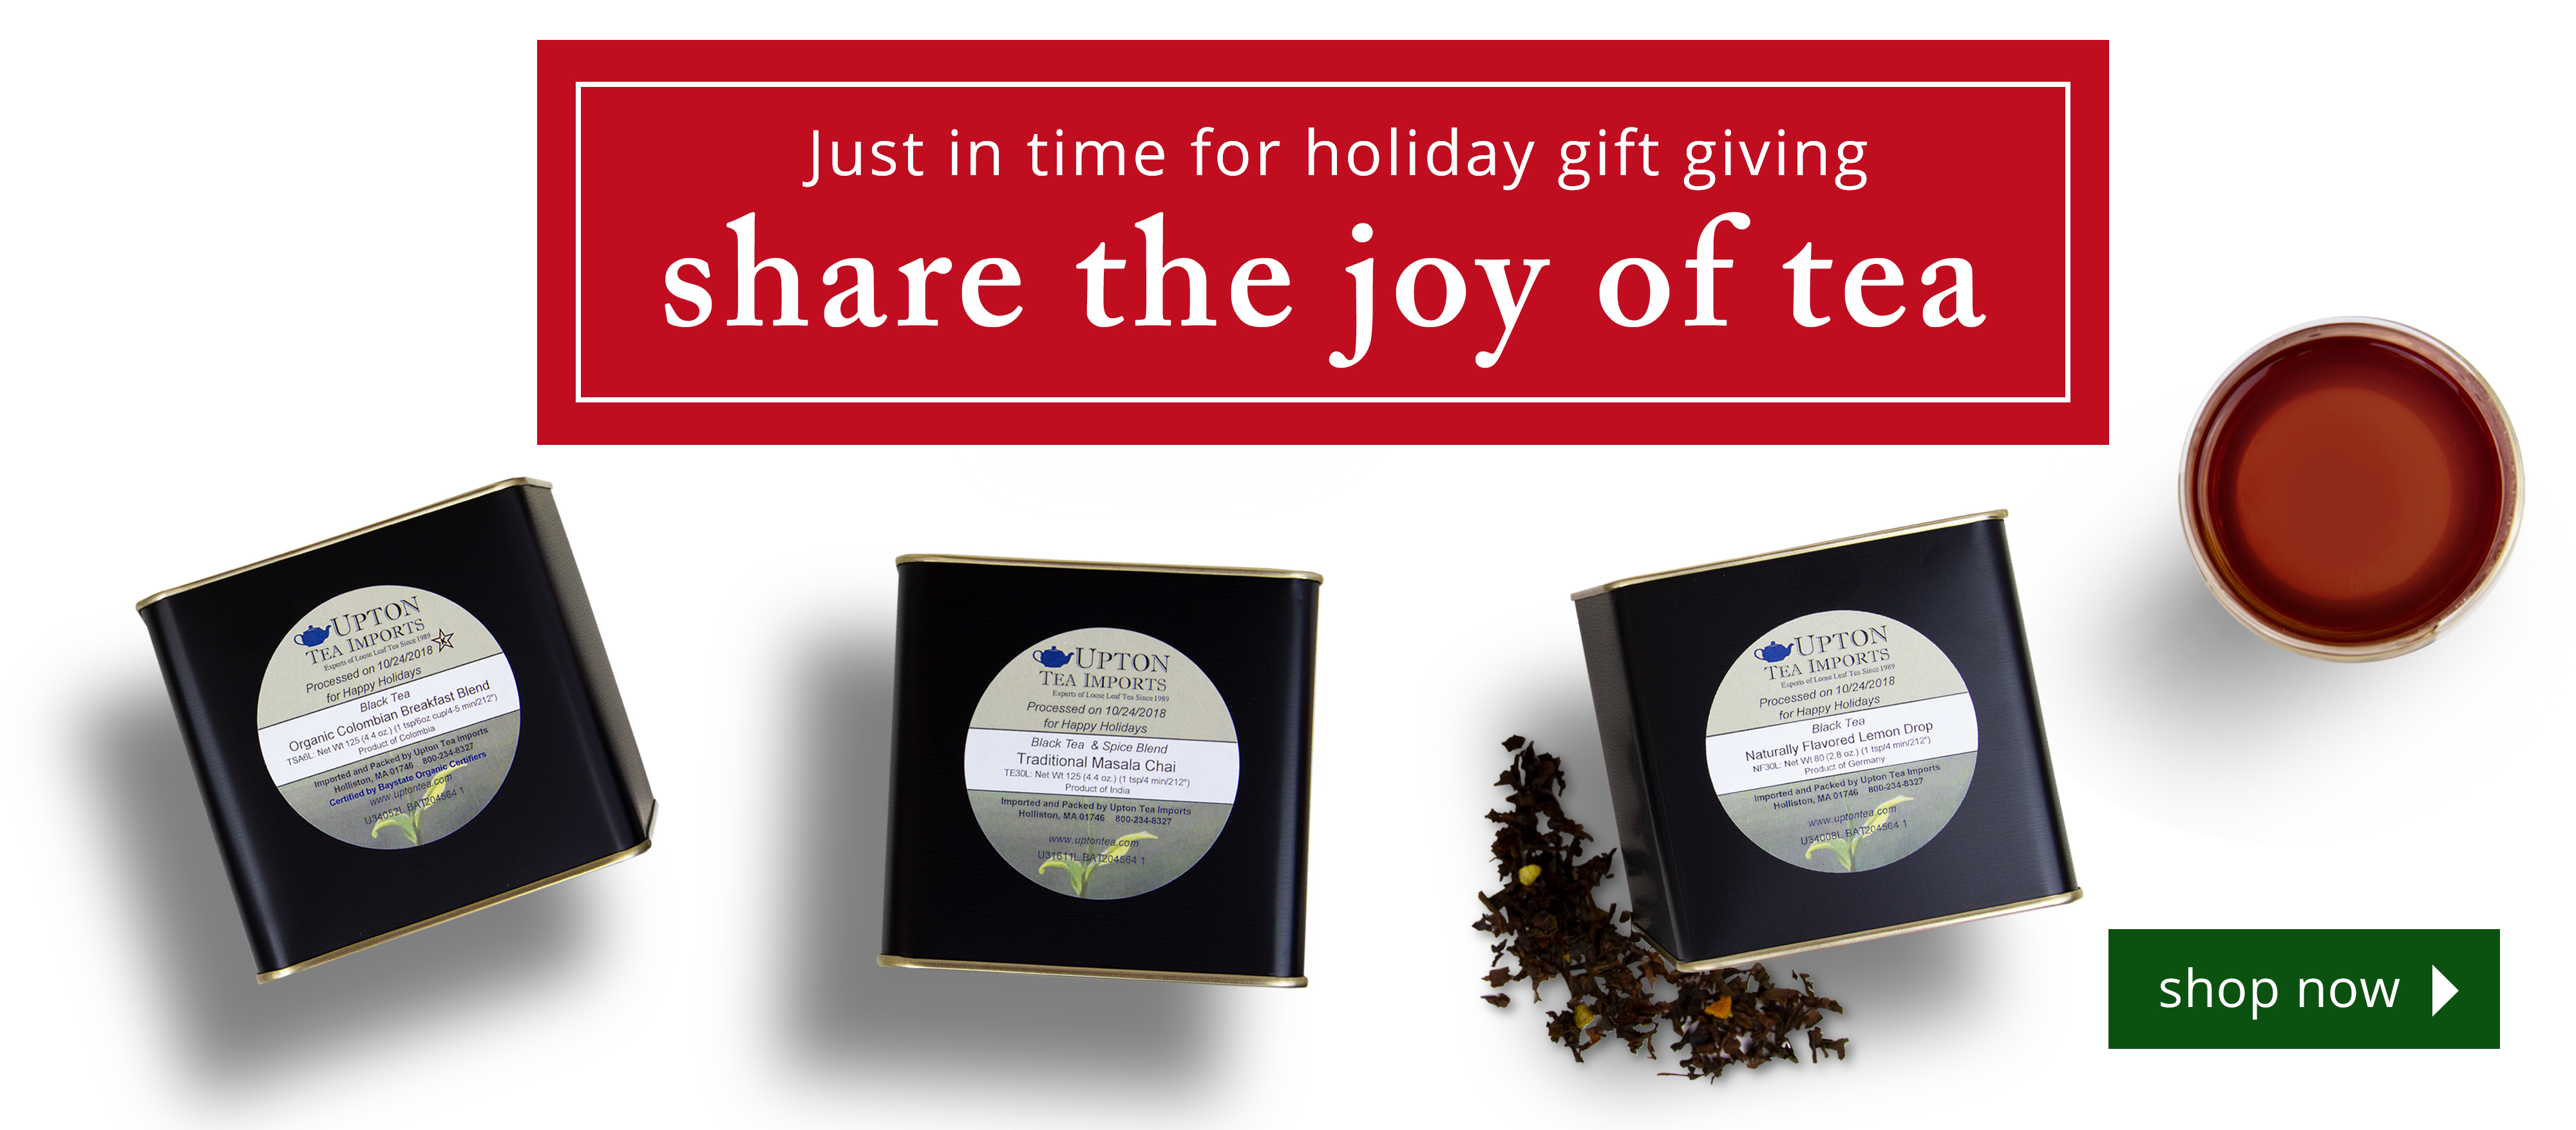 Share the joy of tea!